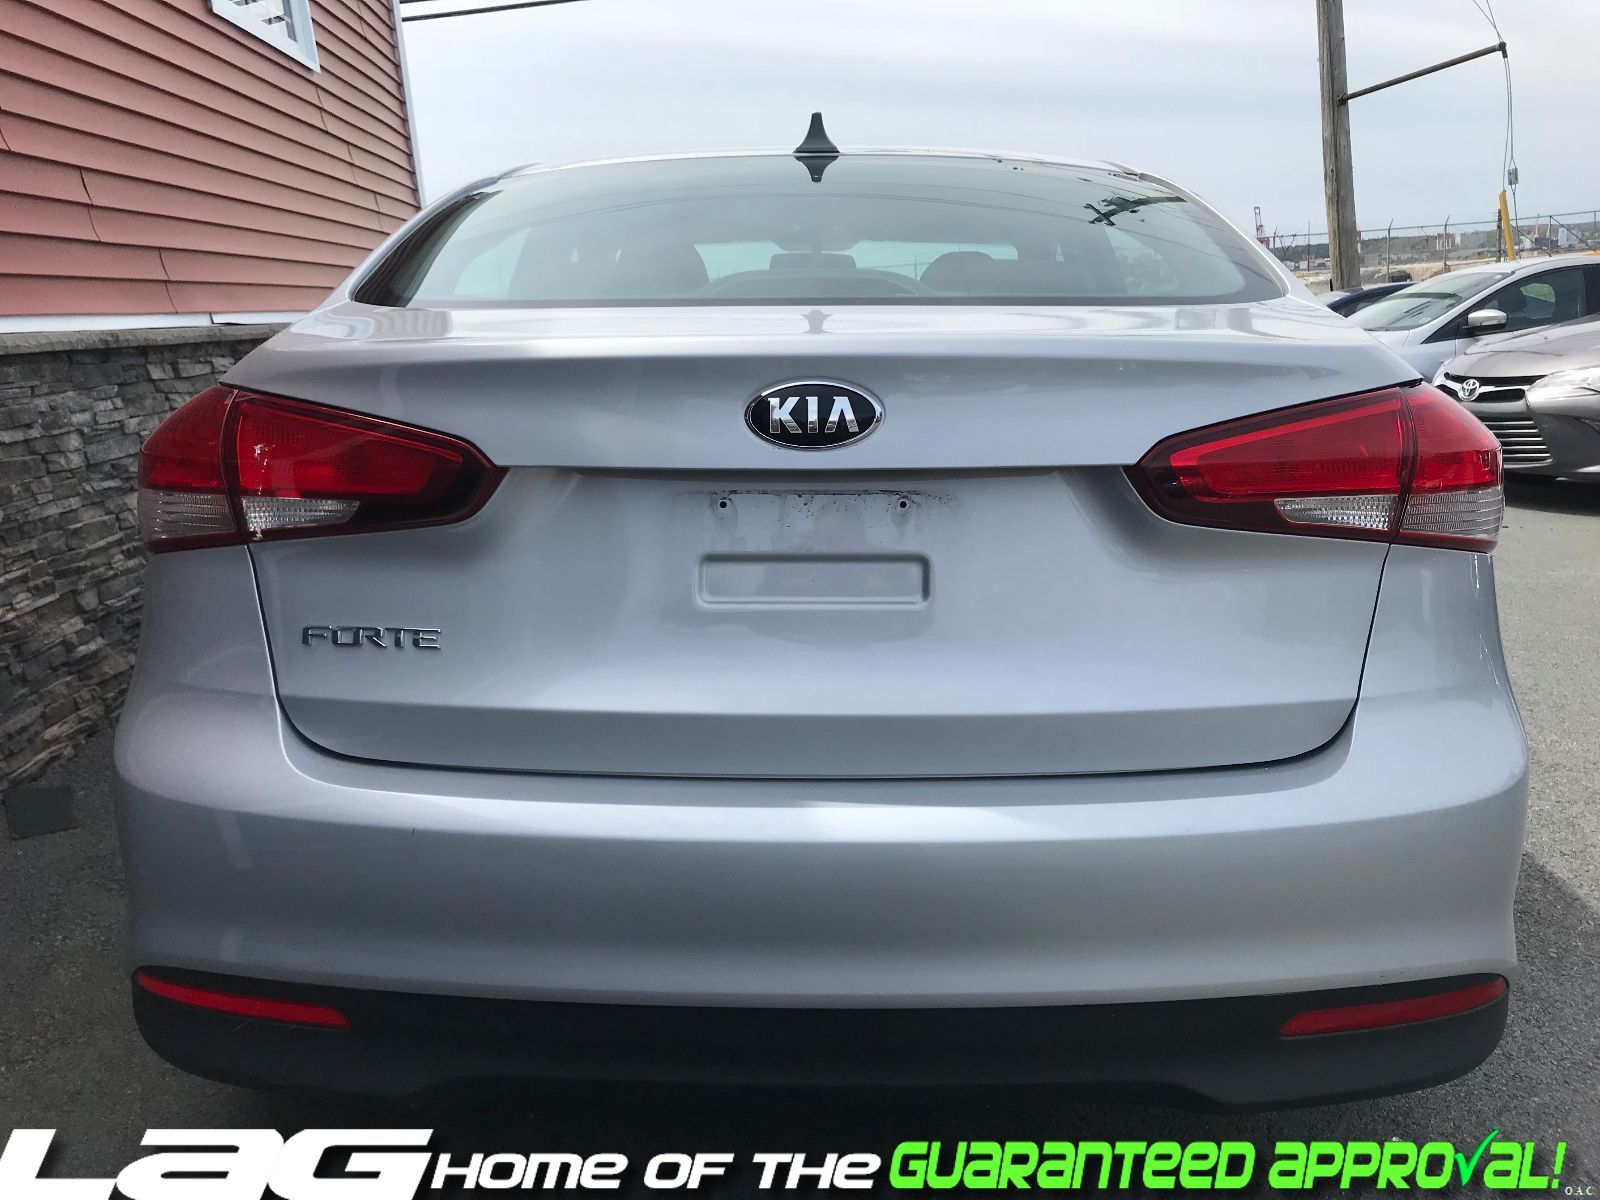 forte pic kia pre for owned used sale